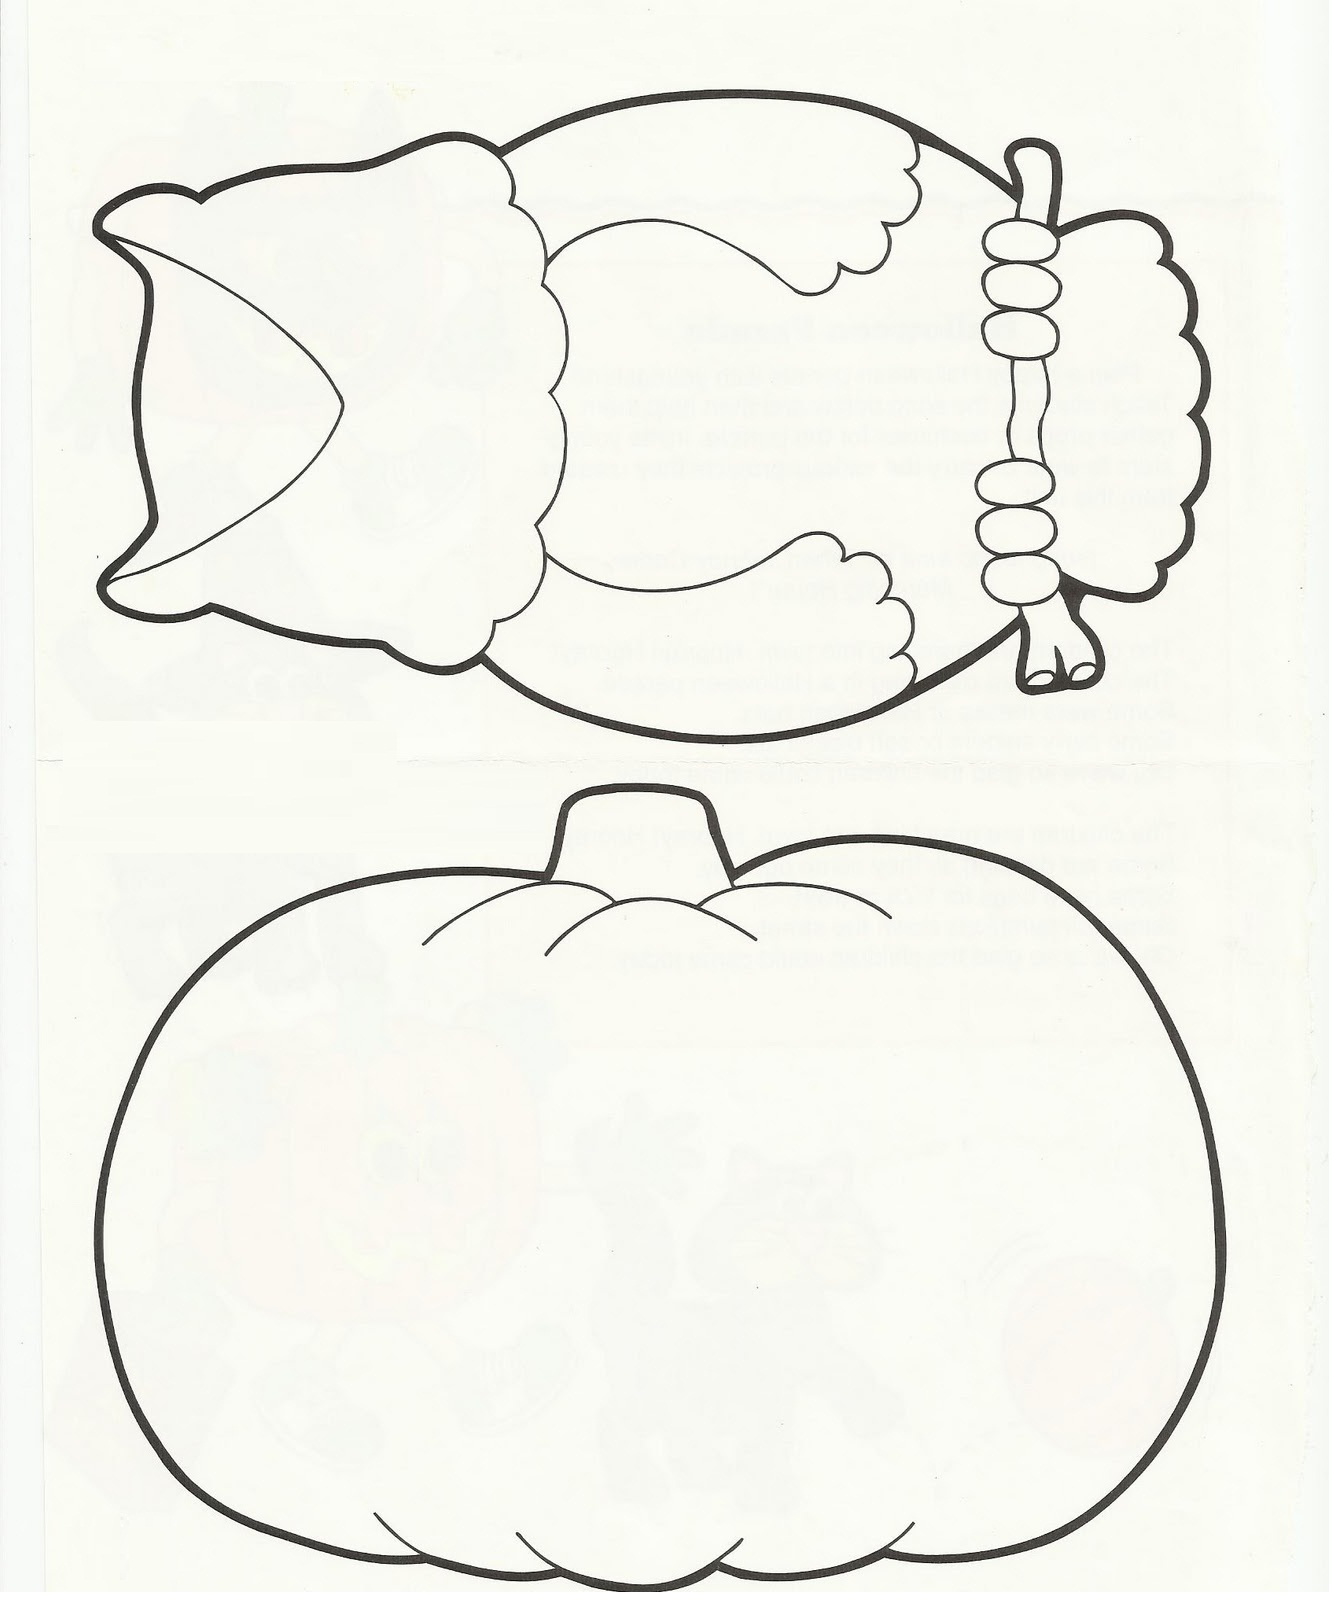 8 best images of owl pumpkin template printable owl for Pumpkin templates free printable